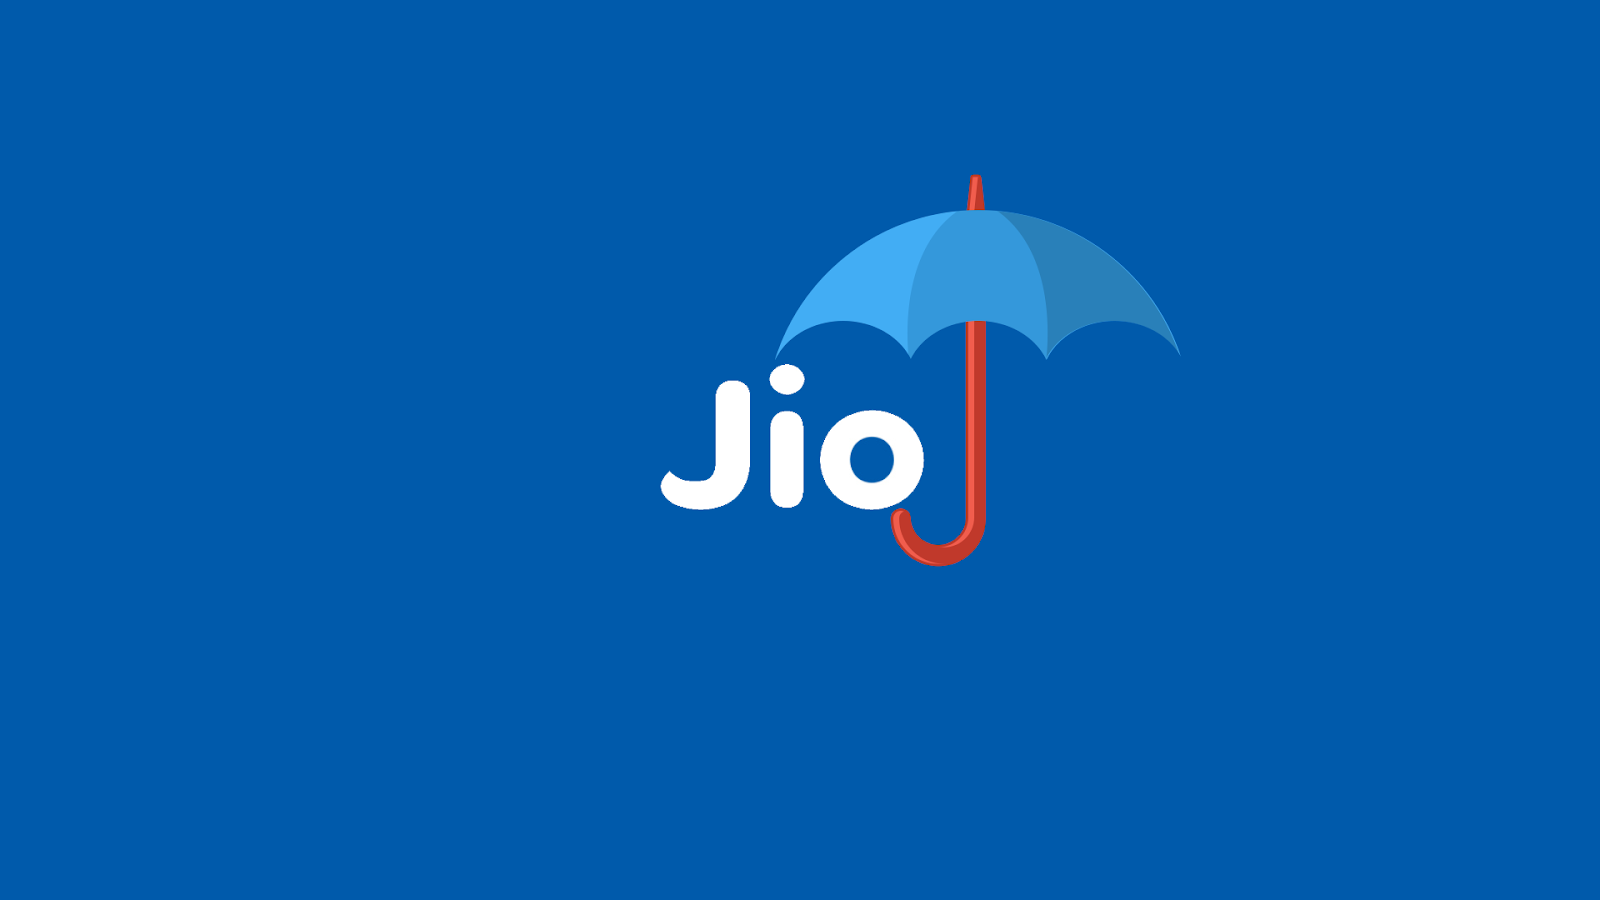 Jio Free Data Recharge offer: Get Free Add On Data Instantly